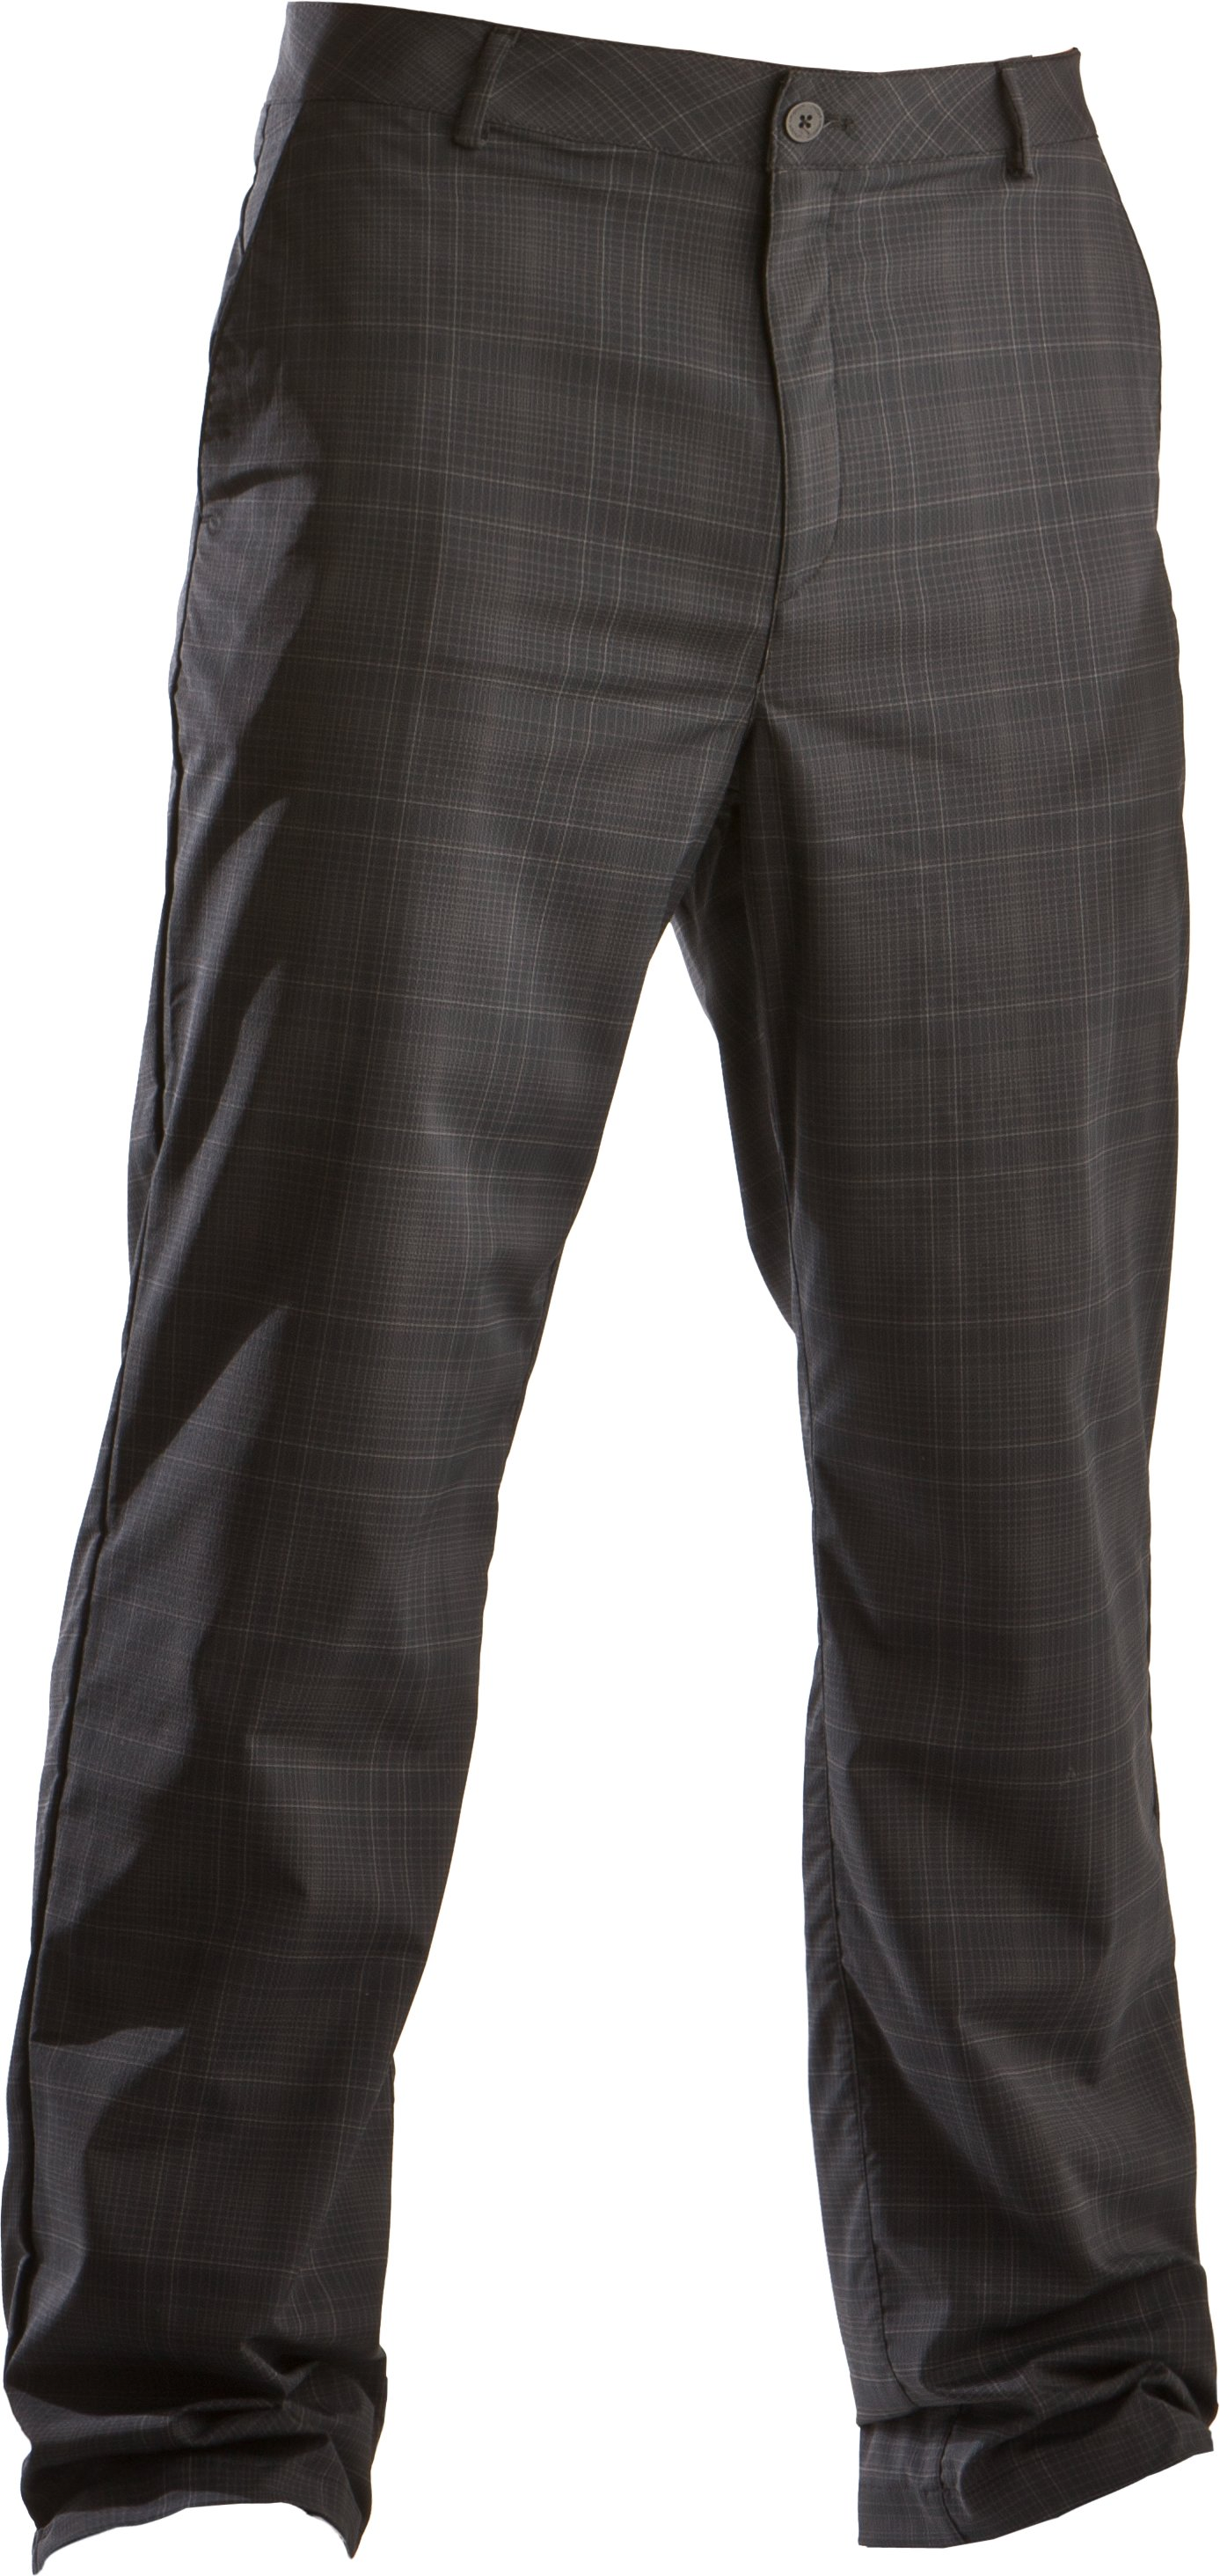 Men's Performance Plaid Golf Pants, Black